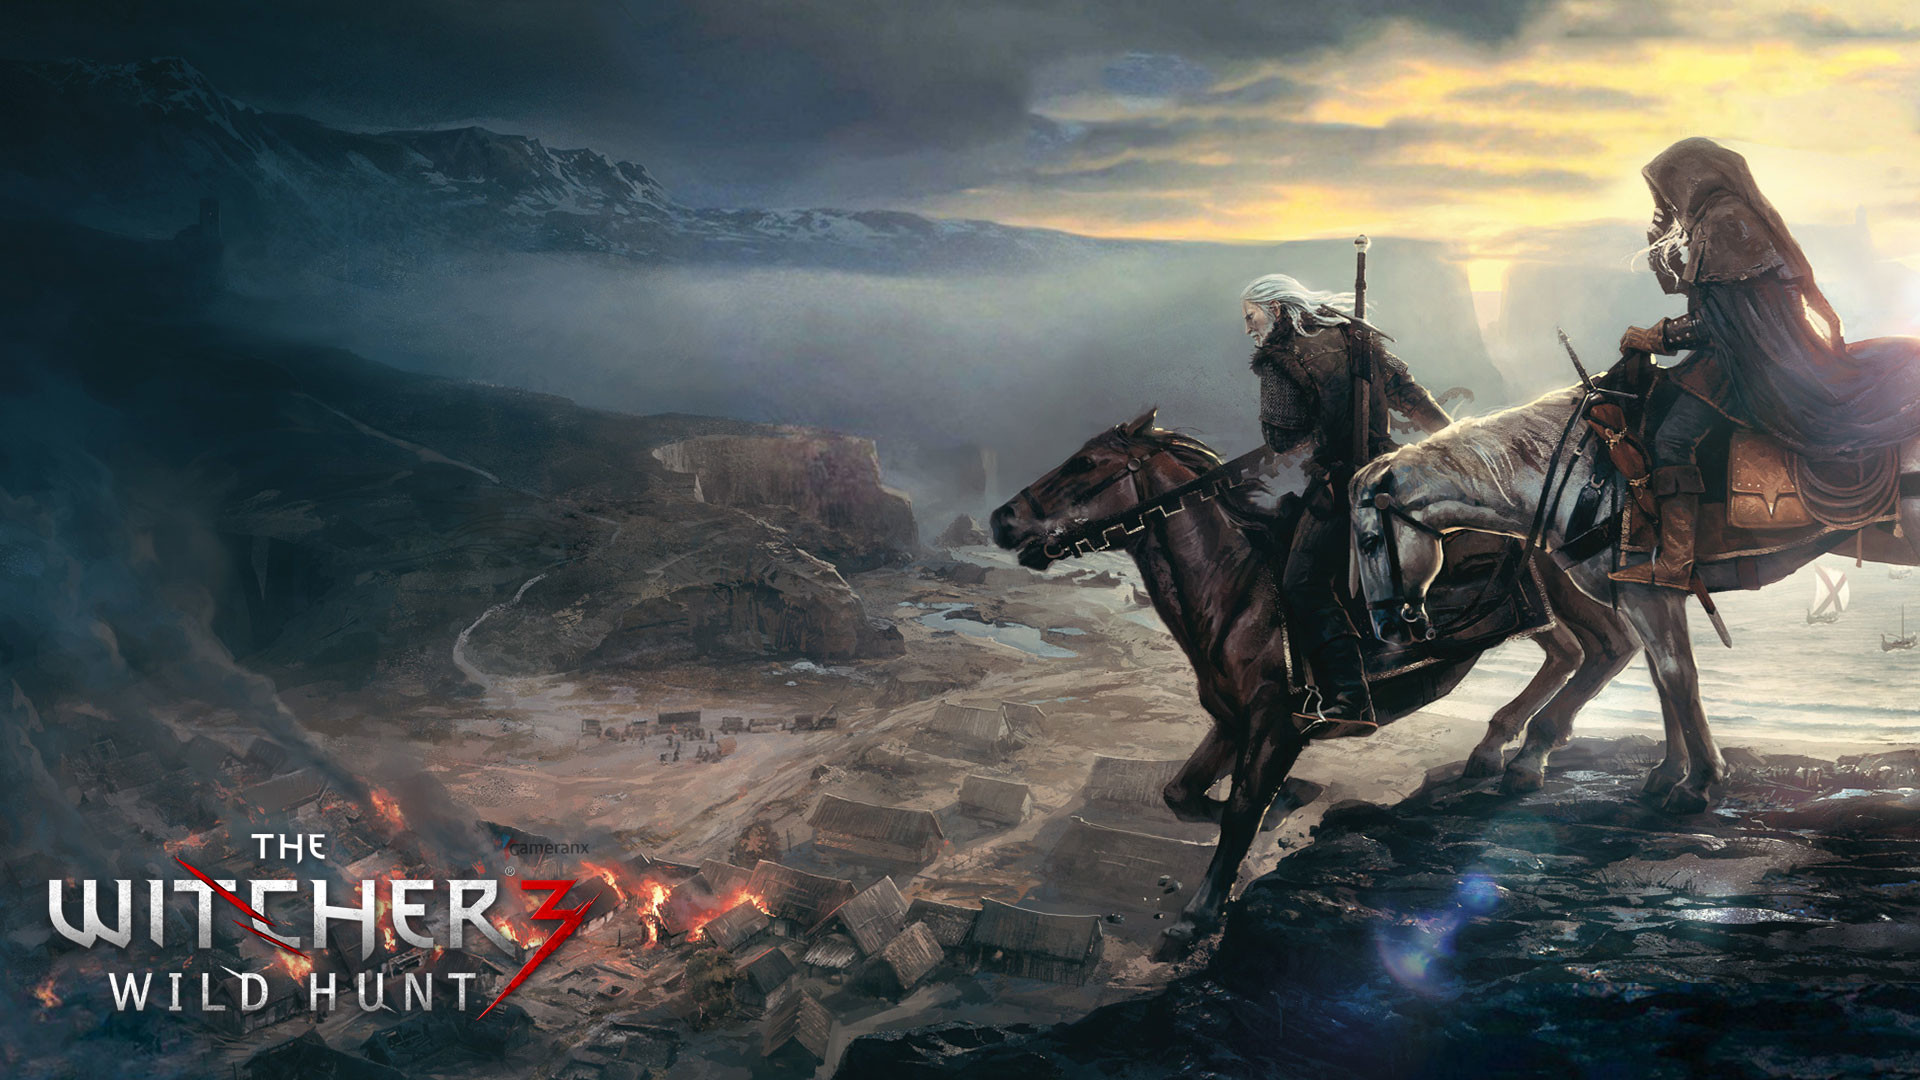 Witcher 3 1080p Wallpaper 88 Images